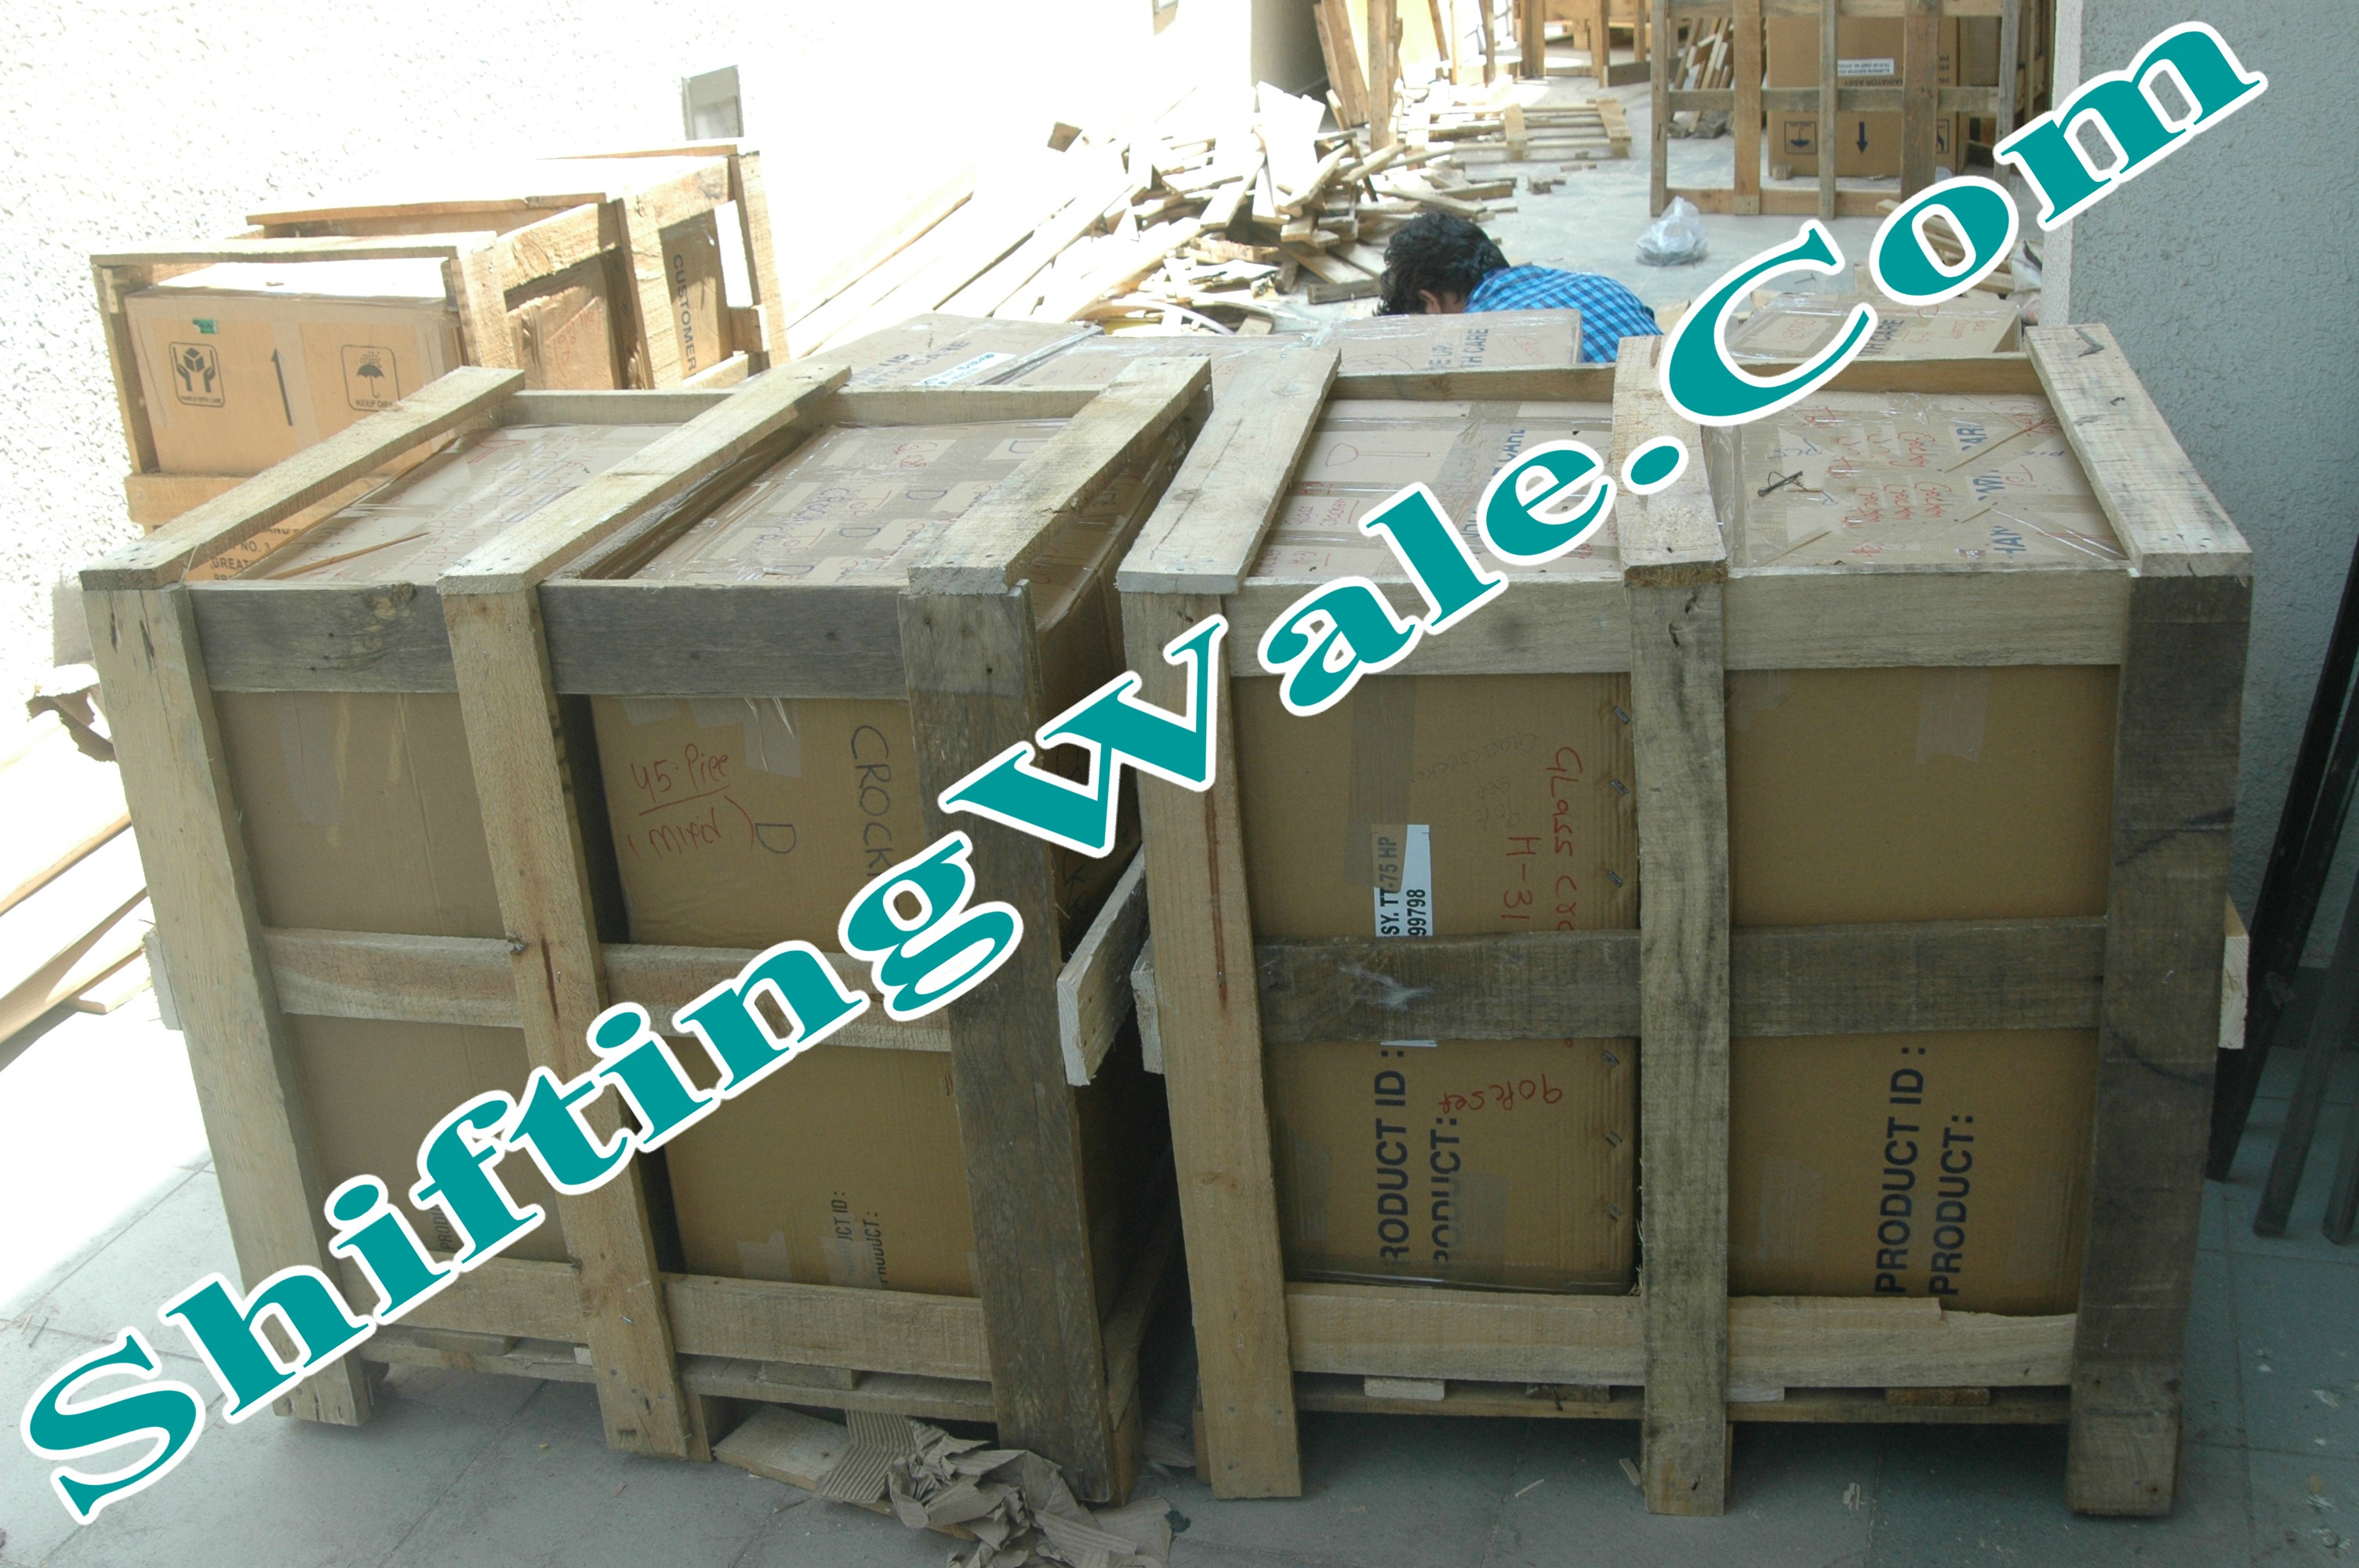 Panchkula to Jodhpur  Best Packers and Movers Get Trusted Relocation